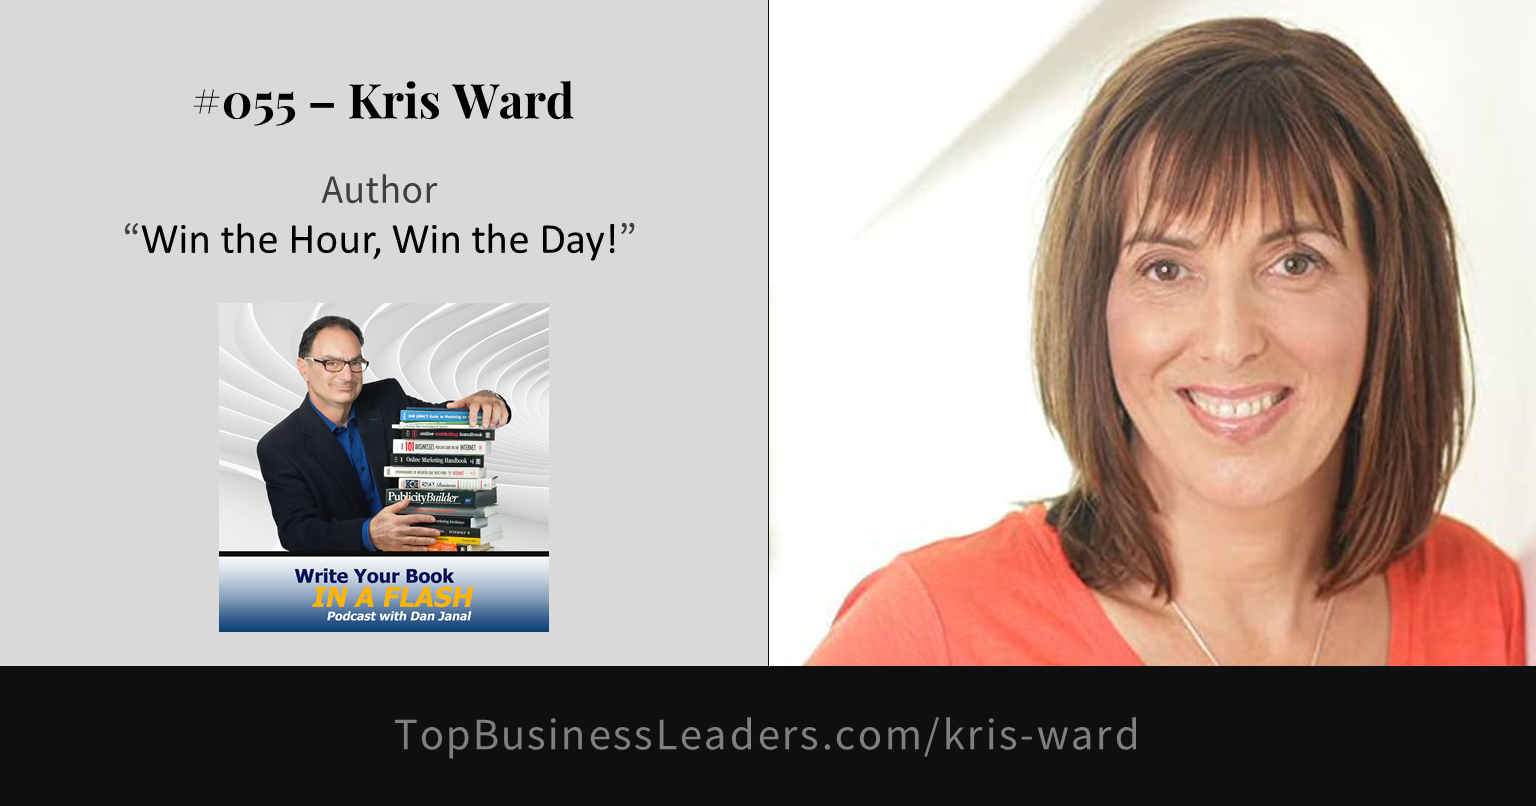 kris-ward-author-win-the-hour-win-the-day